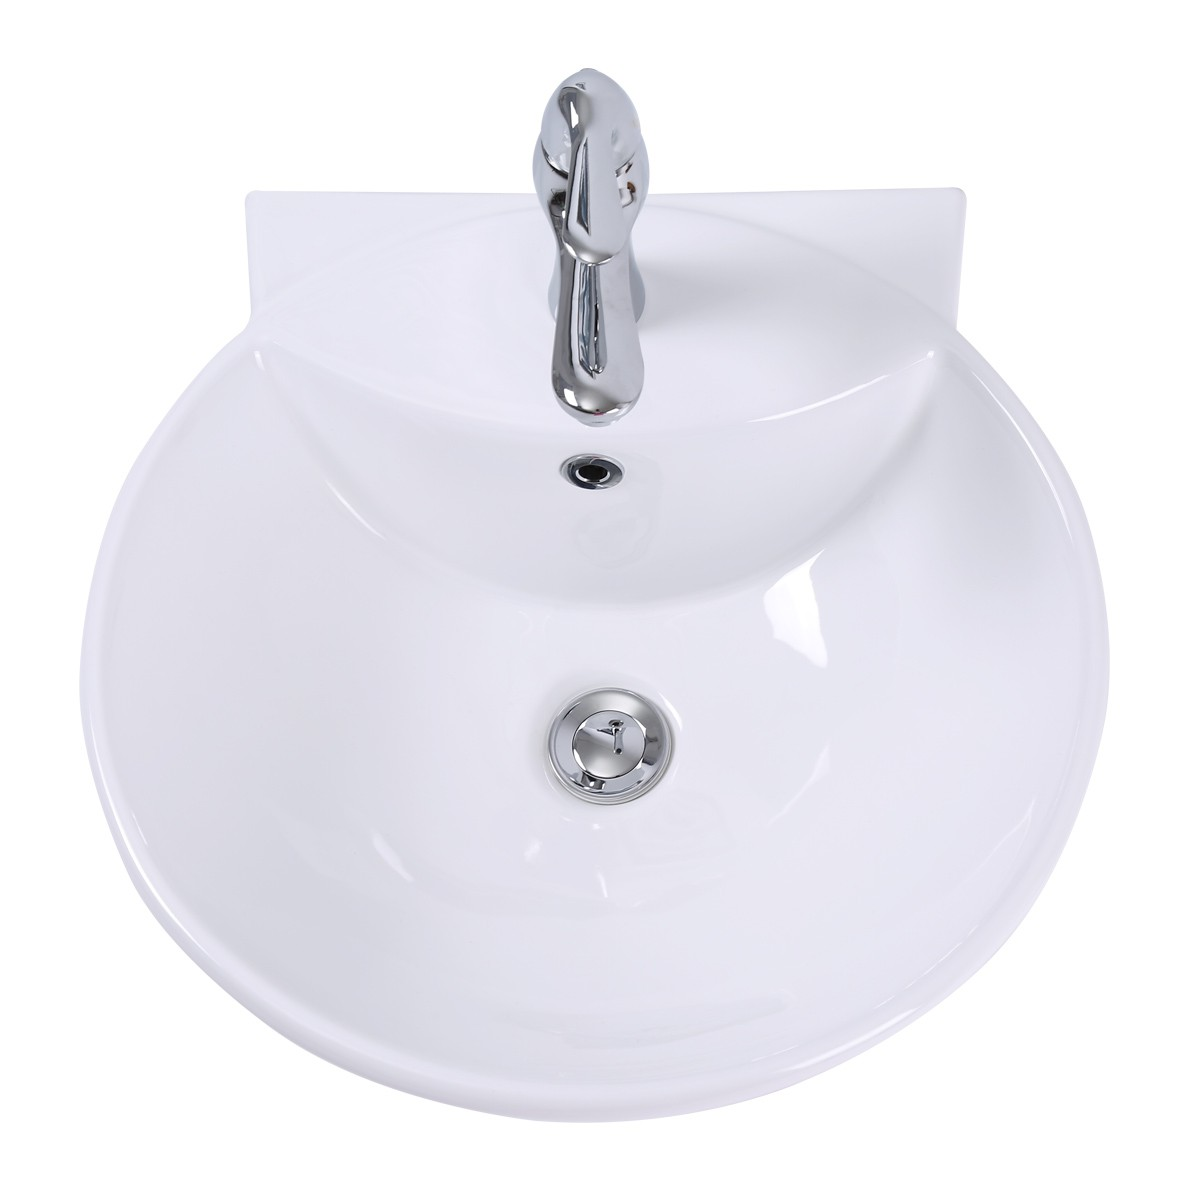 White WallMount Small Sink Easy Clean and Install with pop up drain and single bathroom vessel sinks Countertop vessel sink Small Unique Cute Space Saving Sink